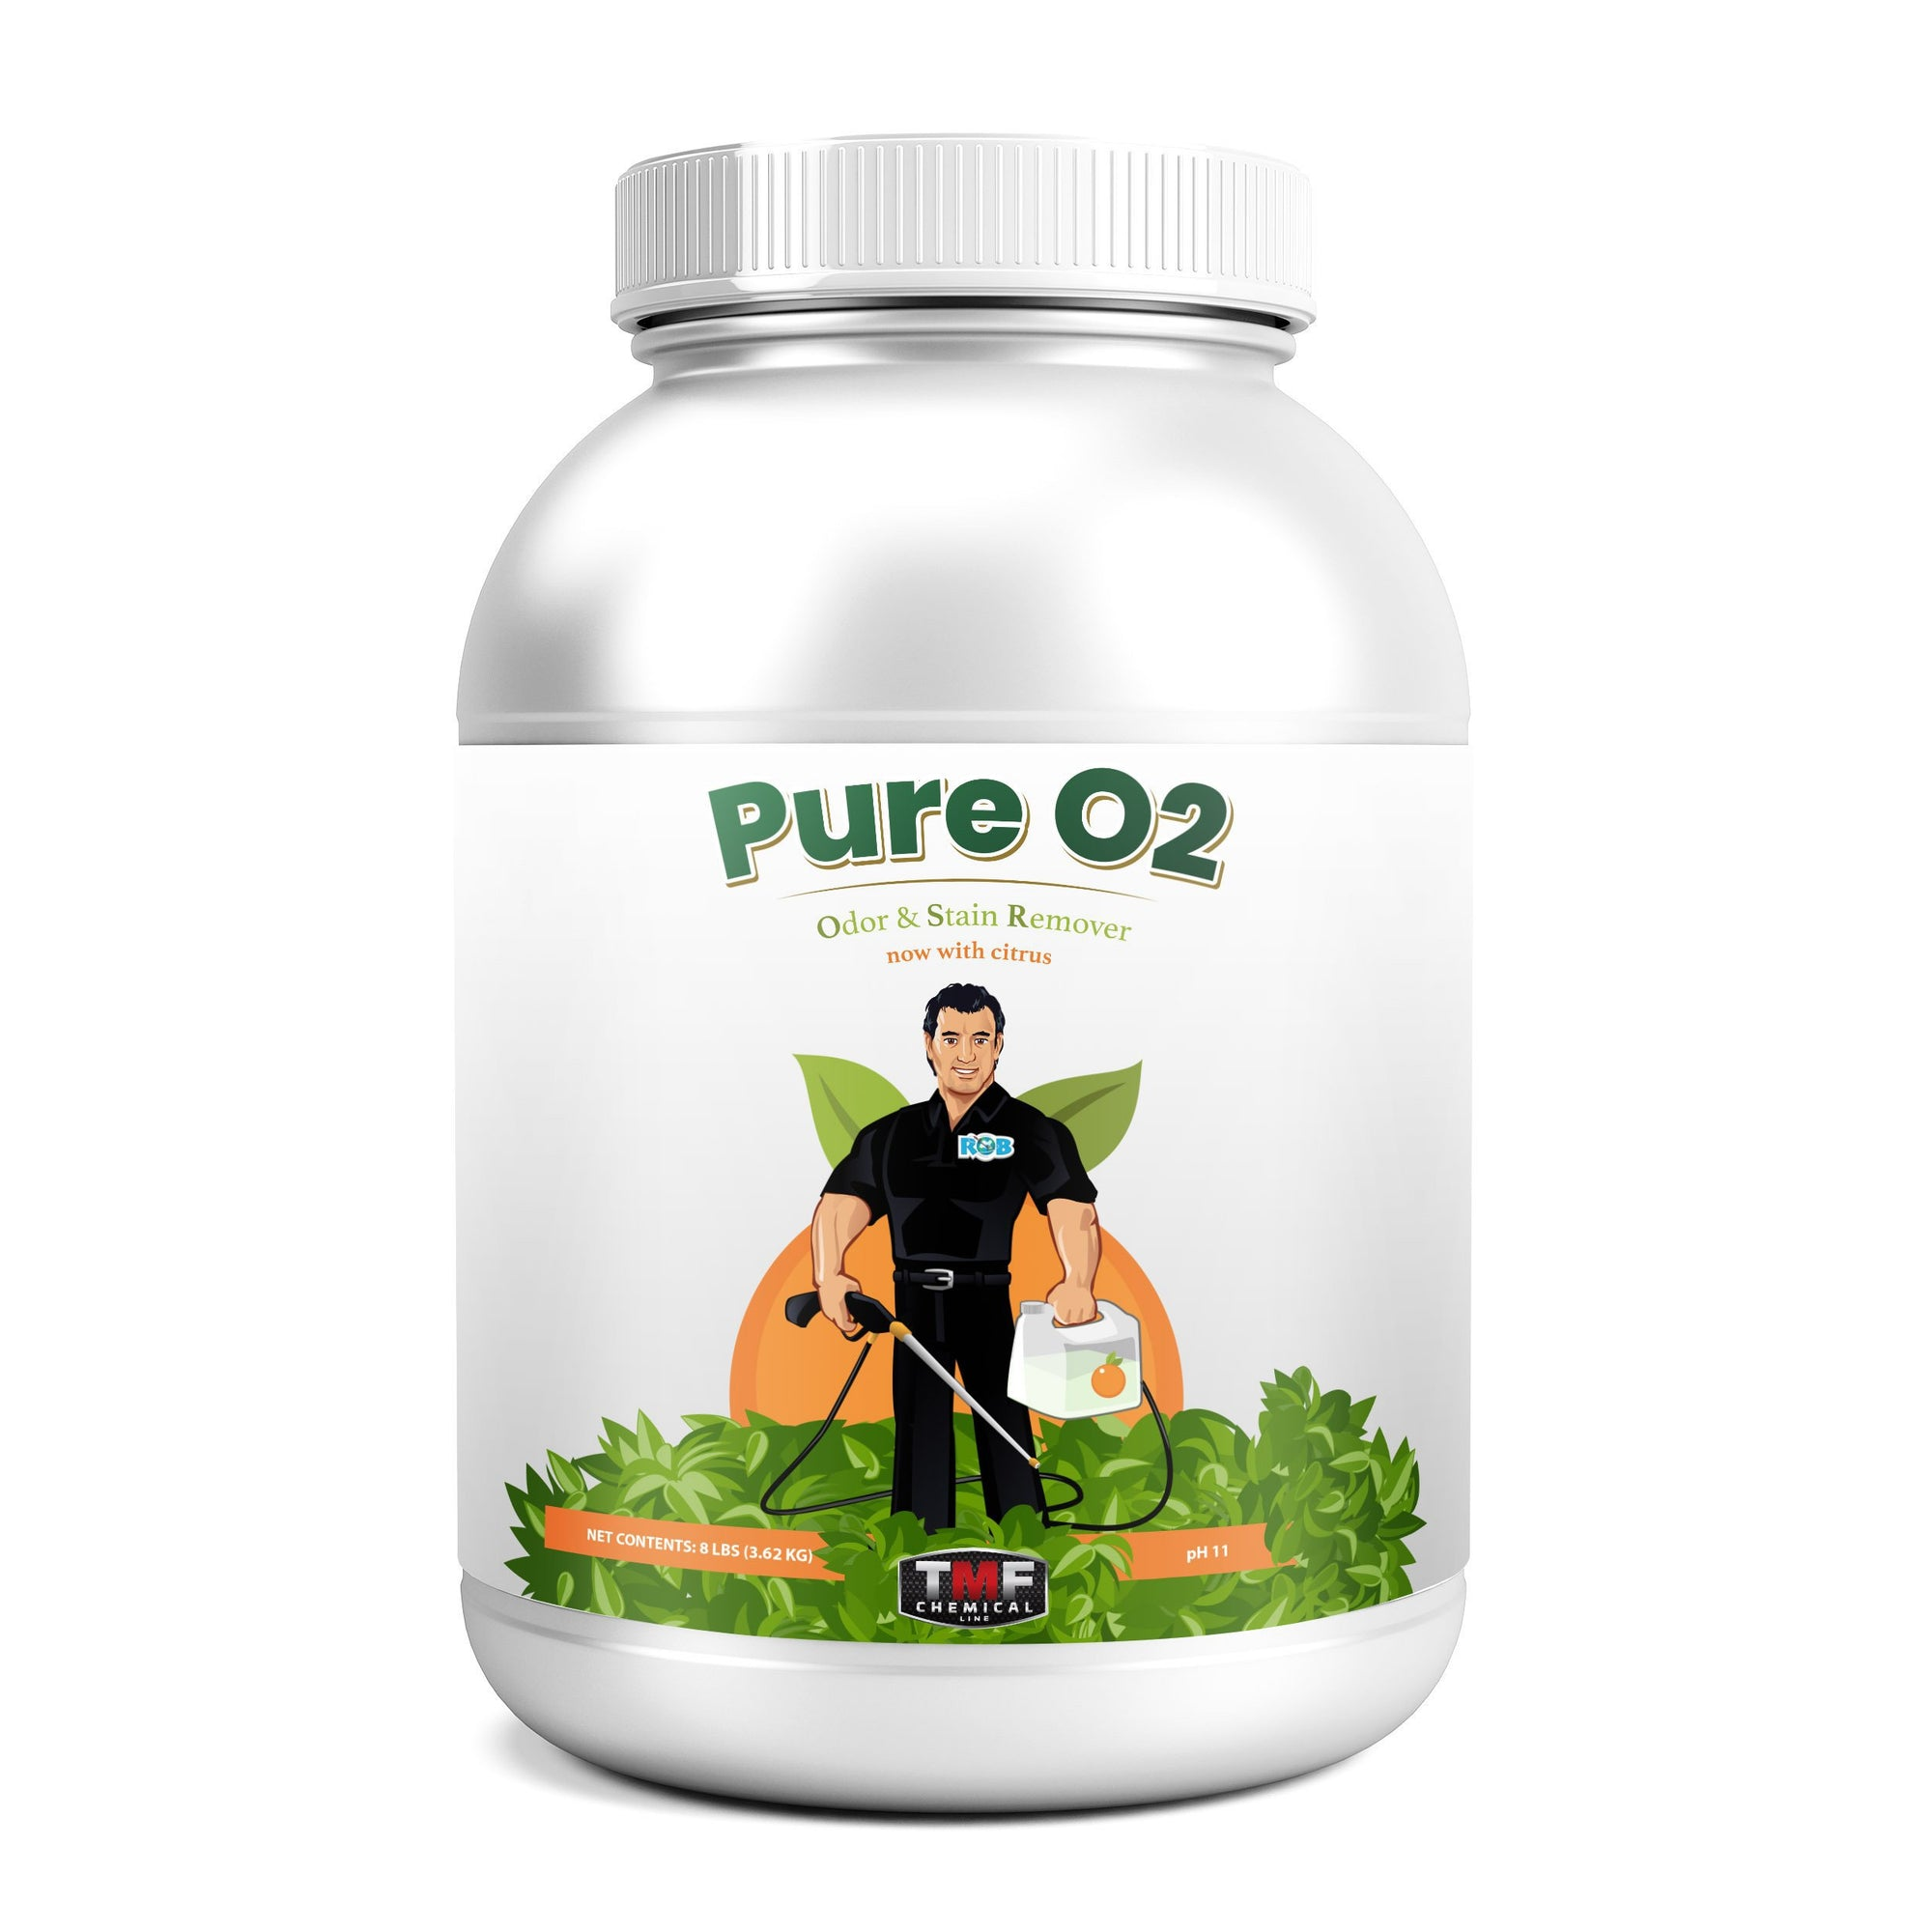 Pure O2, a professional concentrated Odor Stain Removal booster